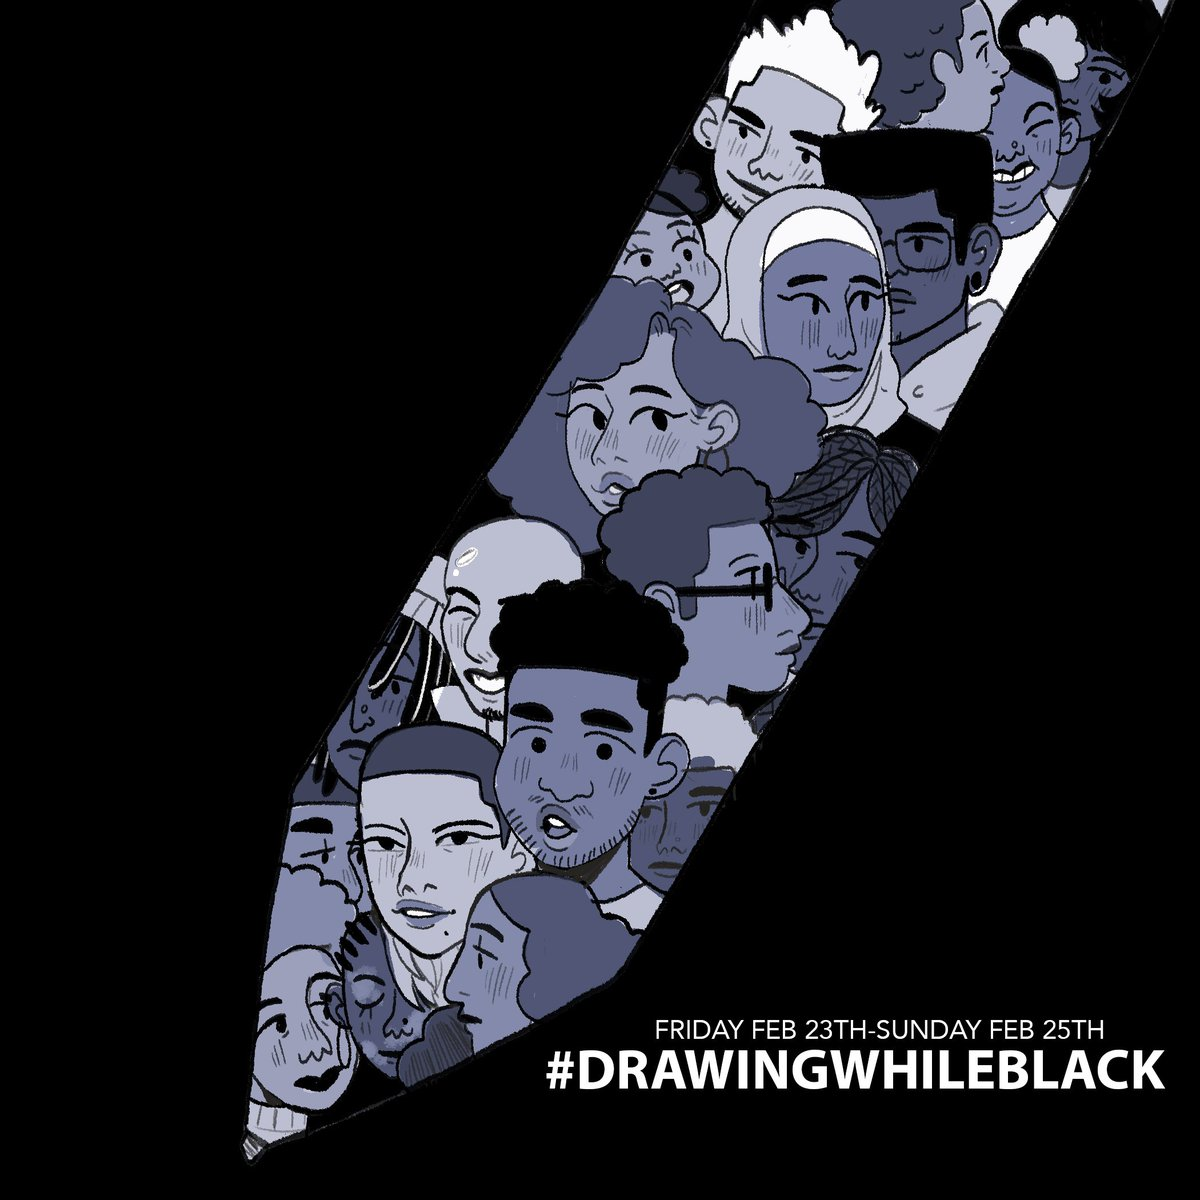 relaunching #drawingwhileblack this weekend for #BlackHistoryMonth! Let's end February right! 🙌🏿